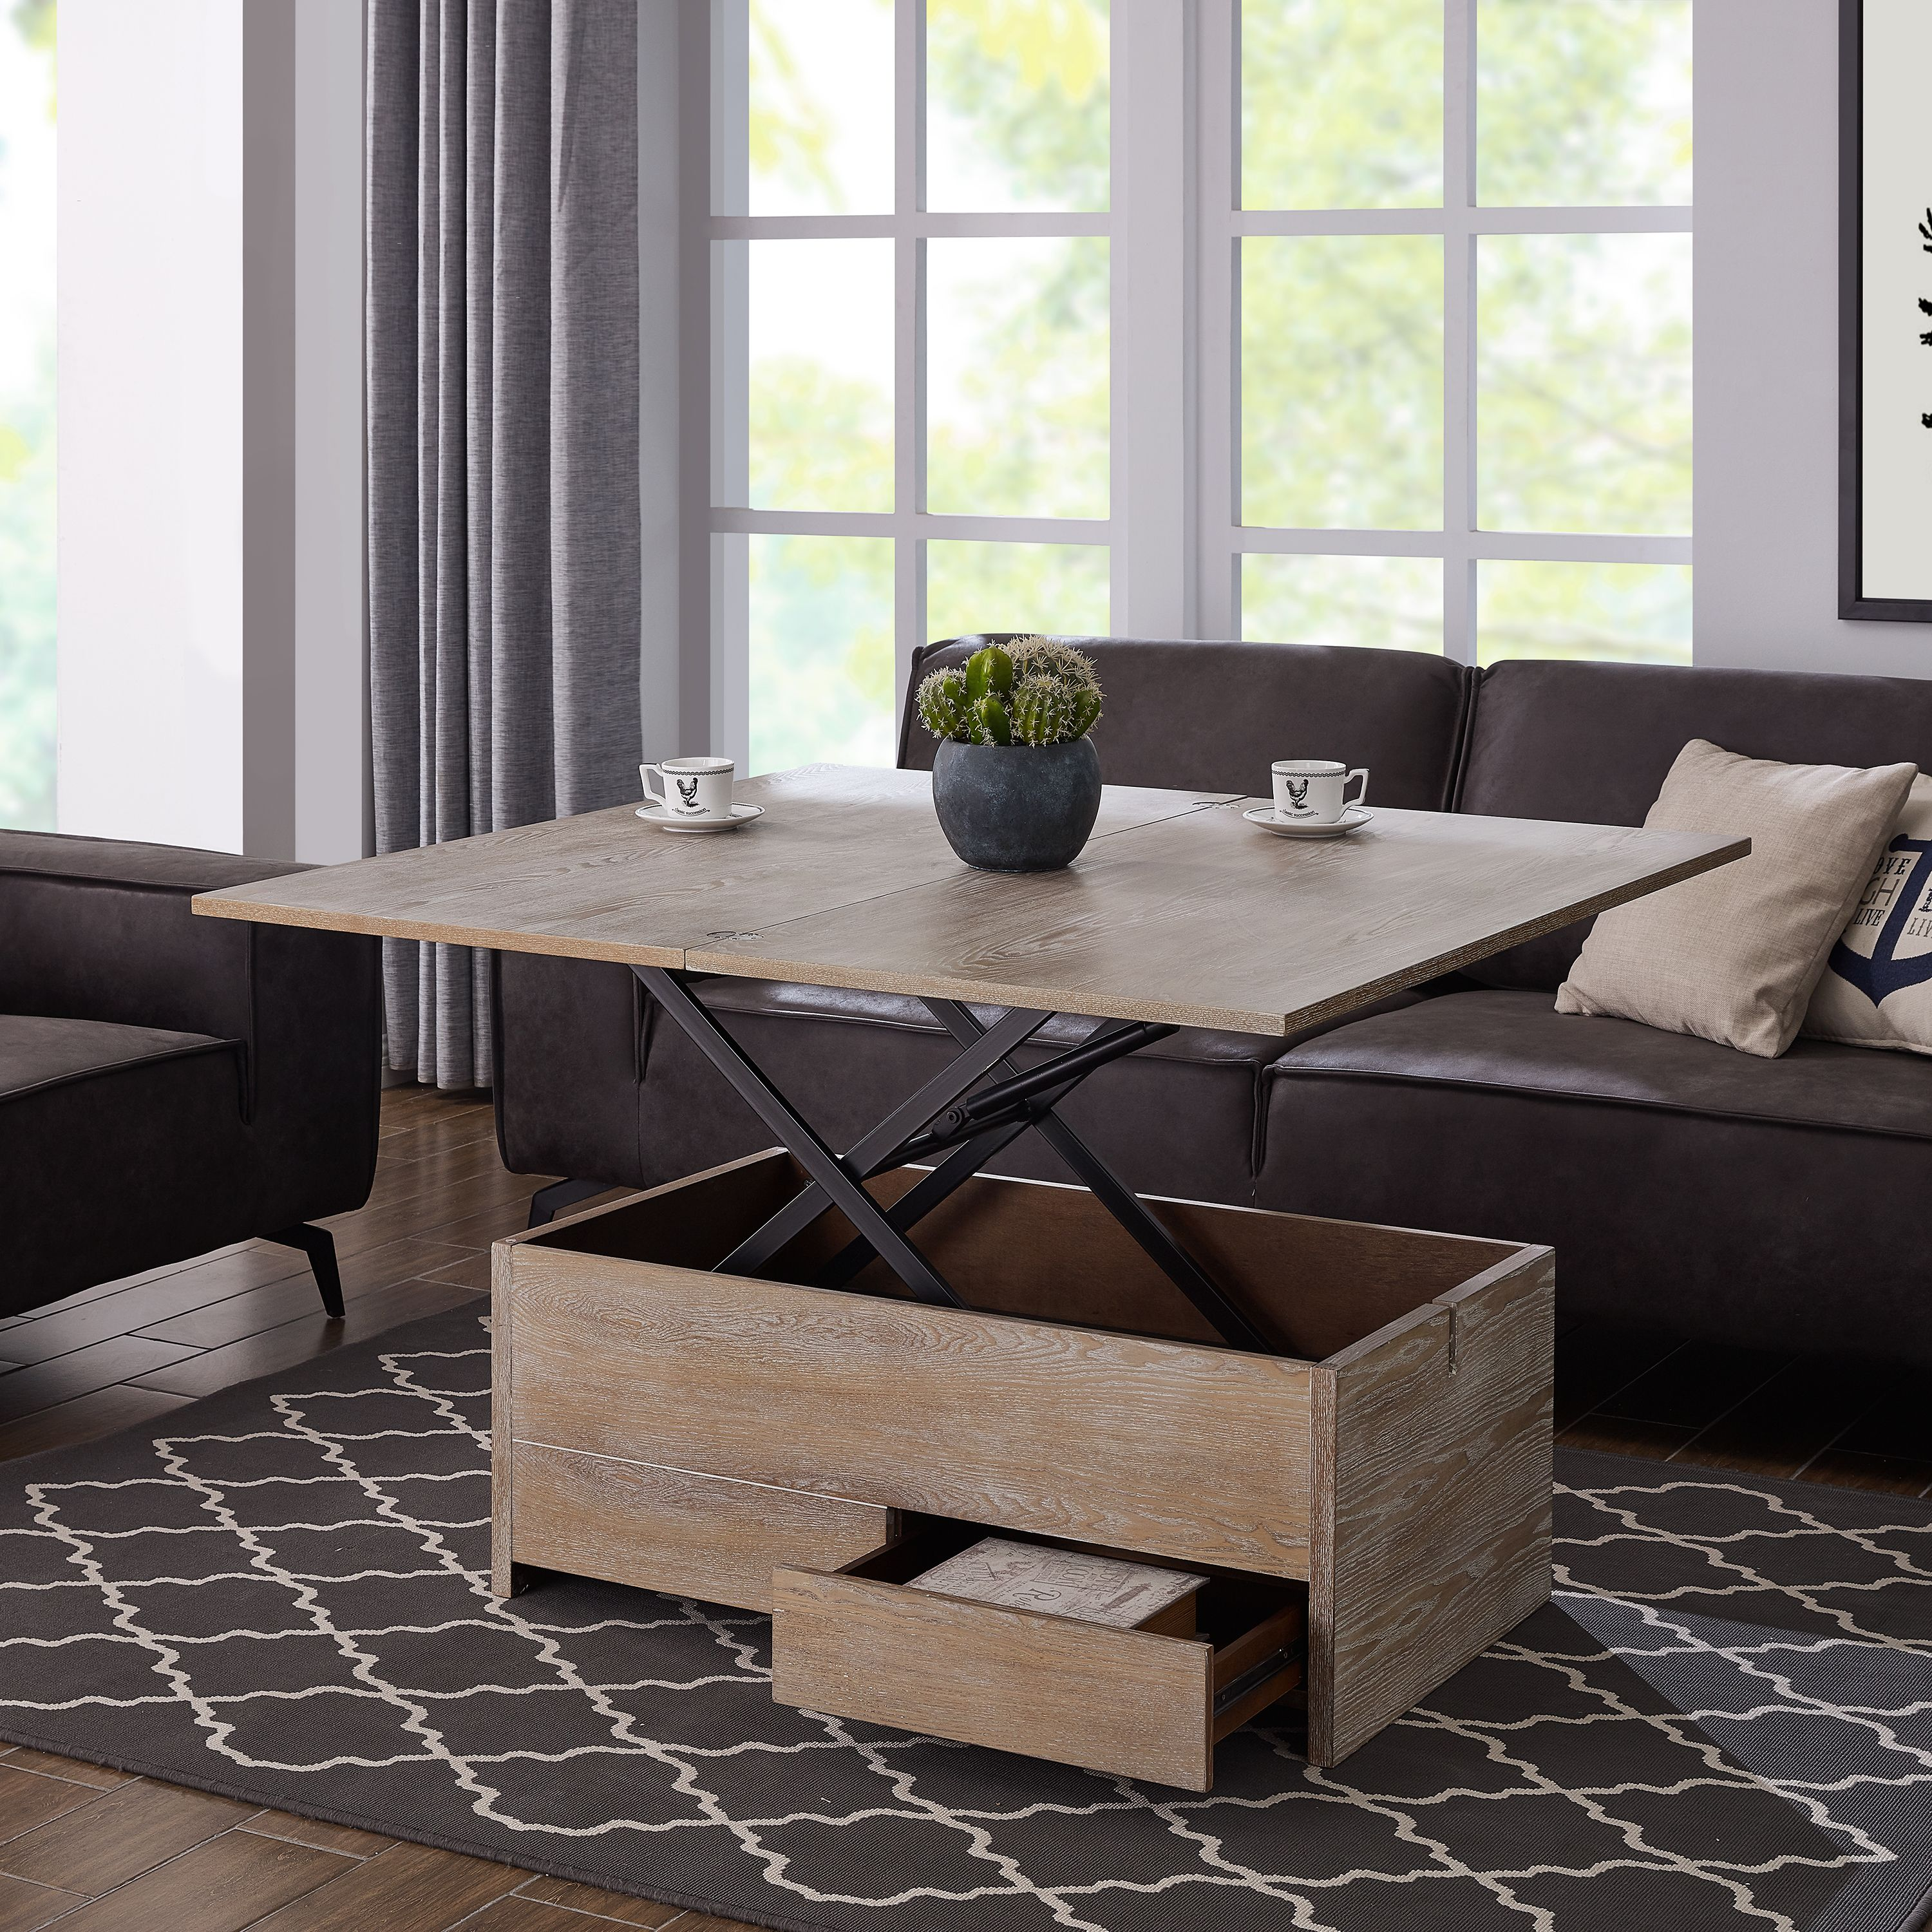 Convertible Dining Table Target Walmart Acor Convertible Storage Coffee Table To Dining Table Walmartcom Coffee Table To Dining Table Coffee Table Living Table [ 3000 x 3000 Pixel ]